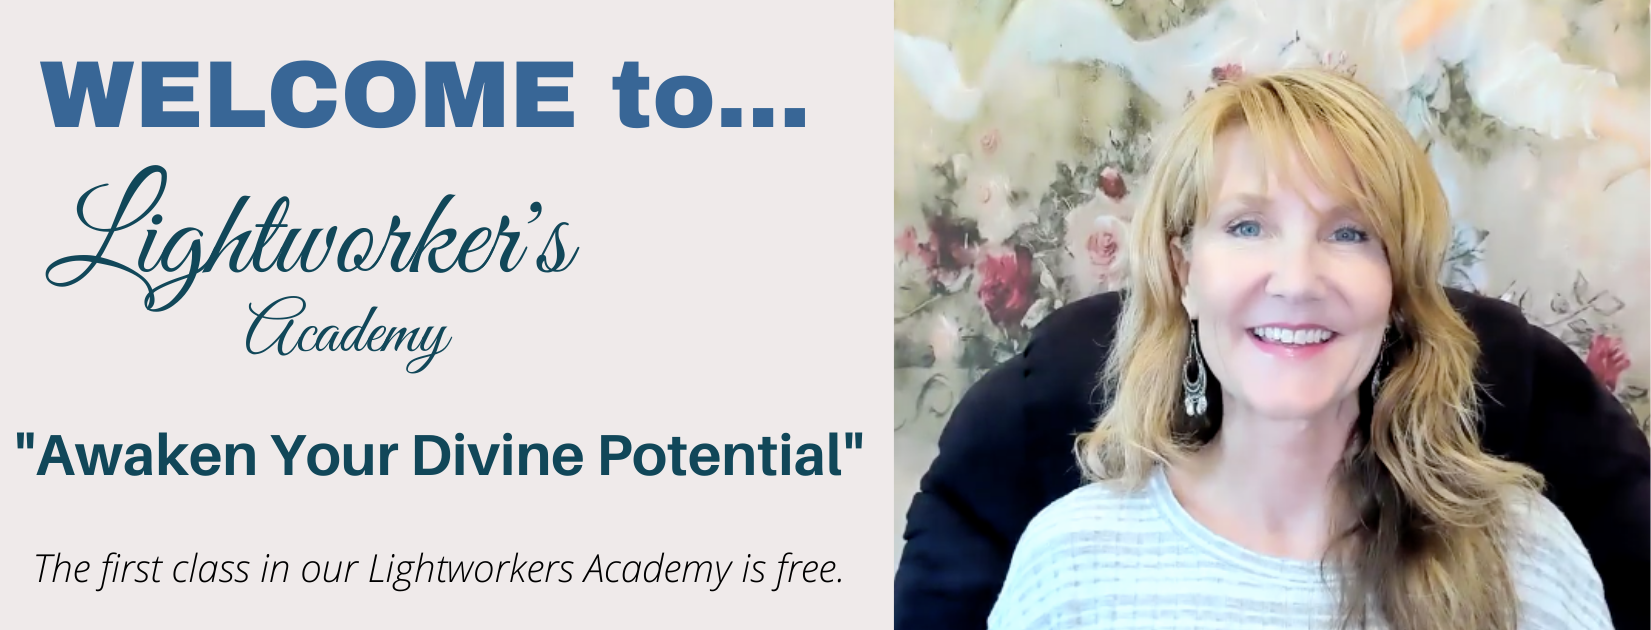 Lightworkers Academy FREE CLASS WELCOME (1)